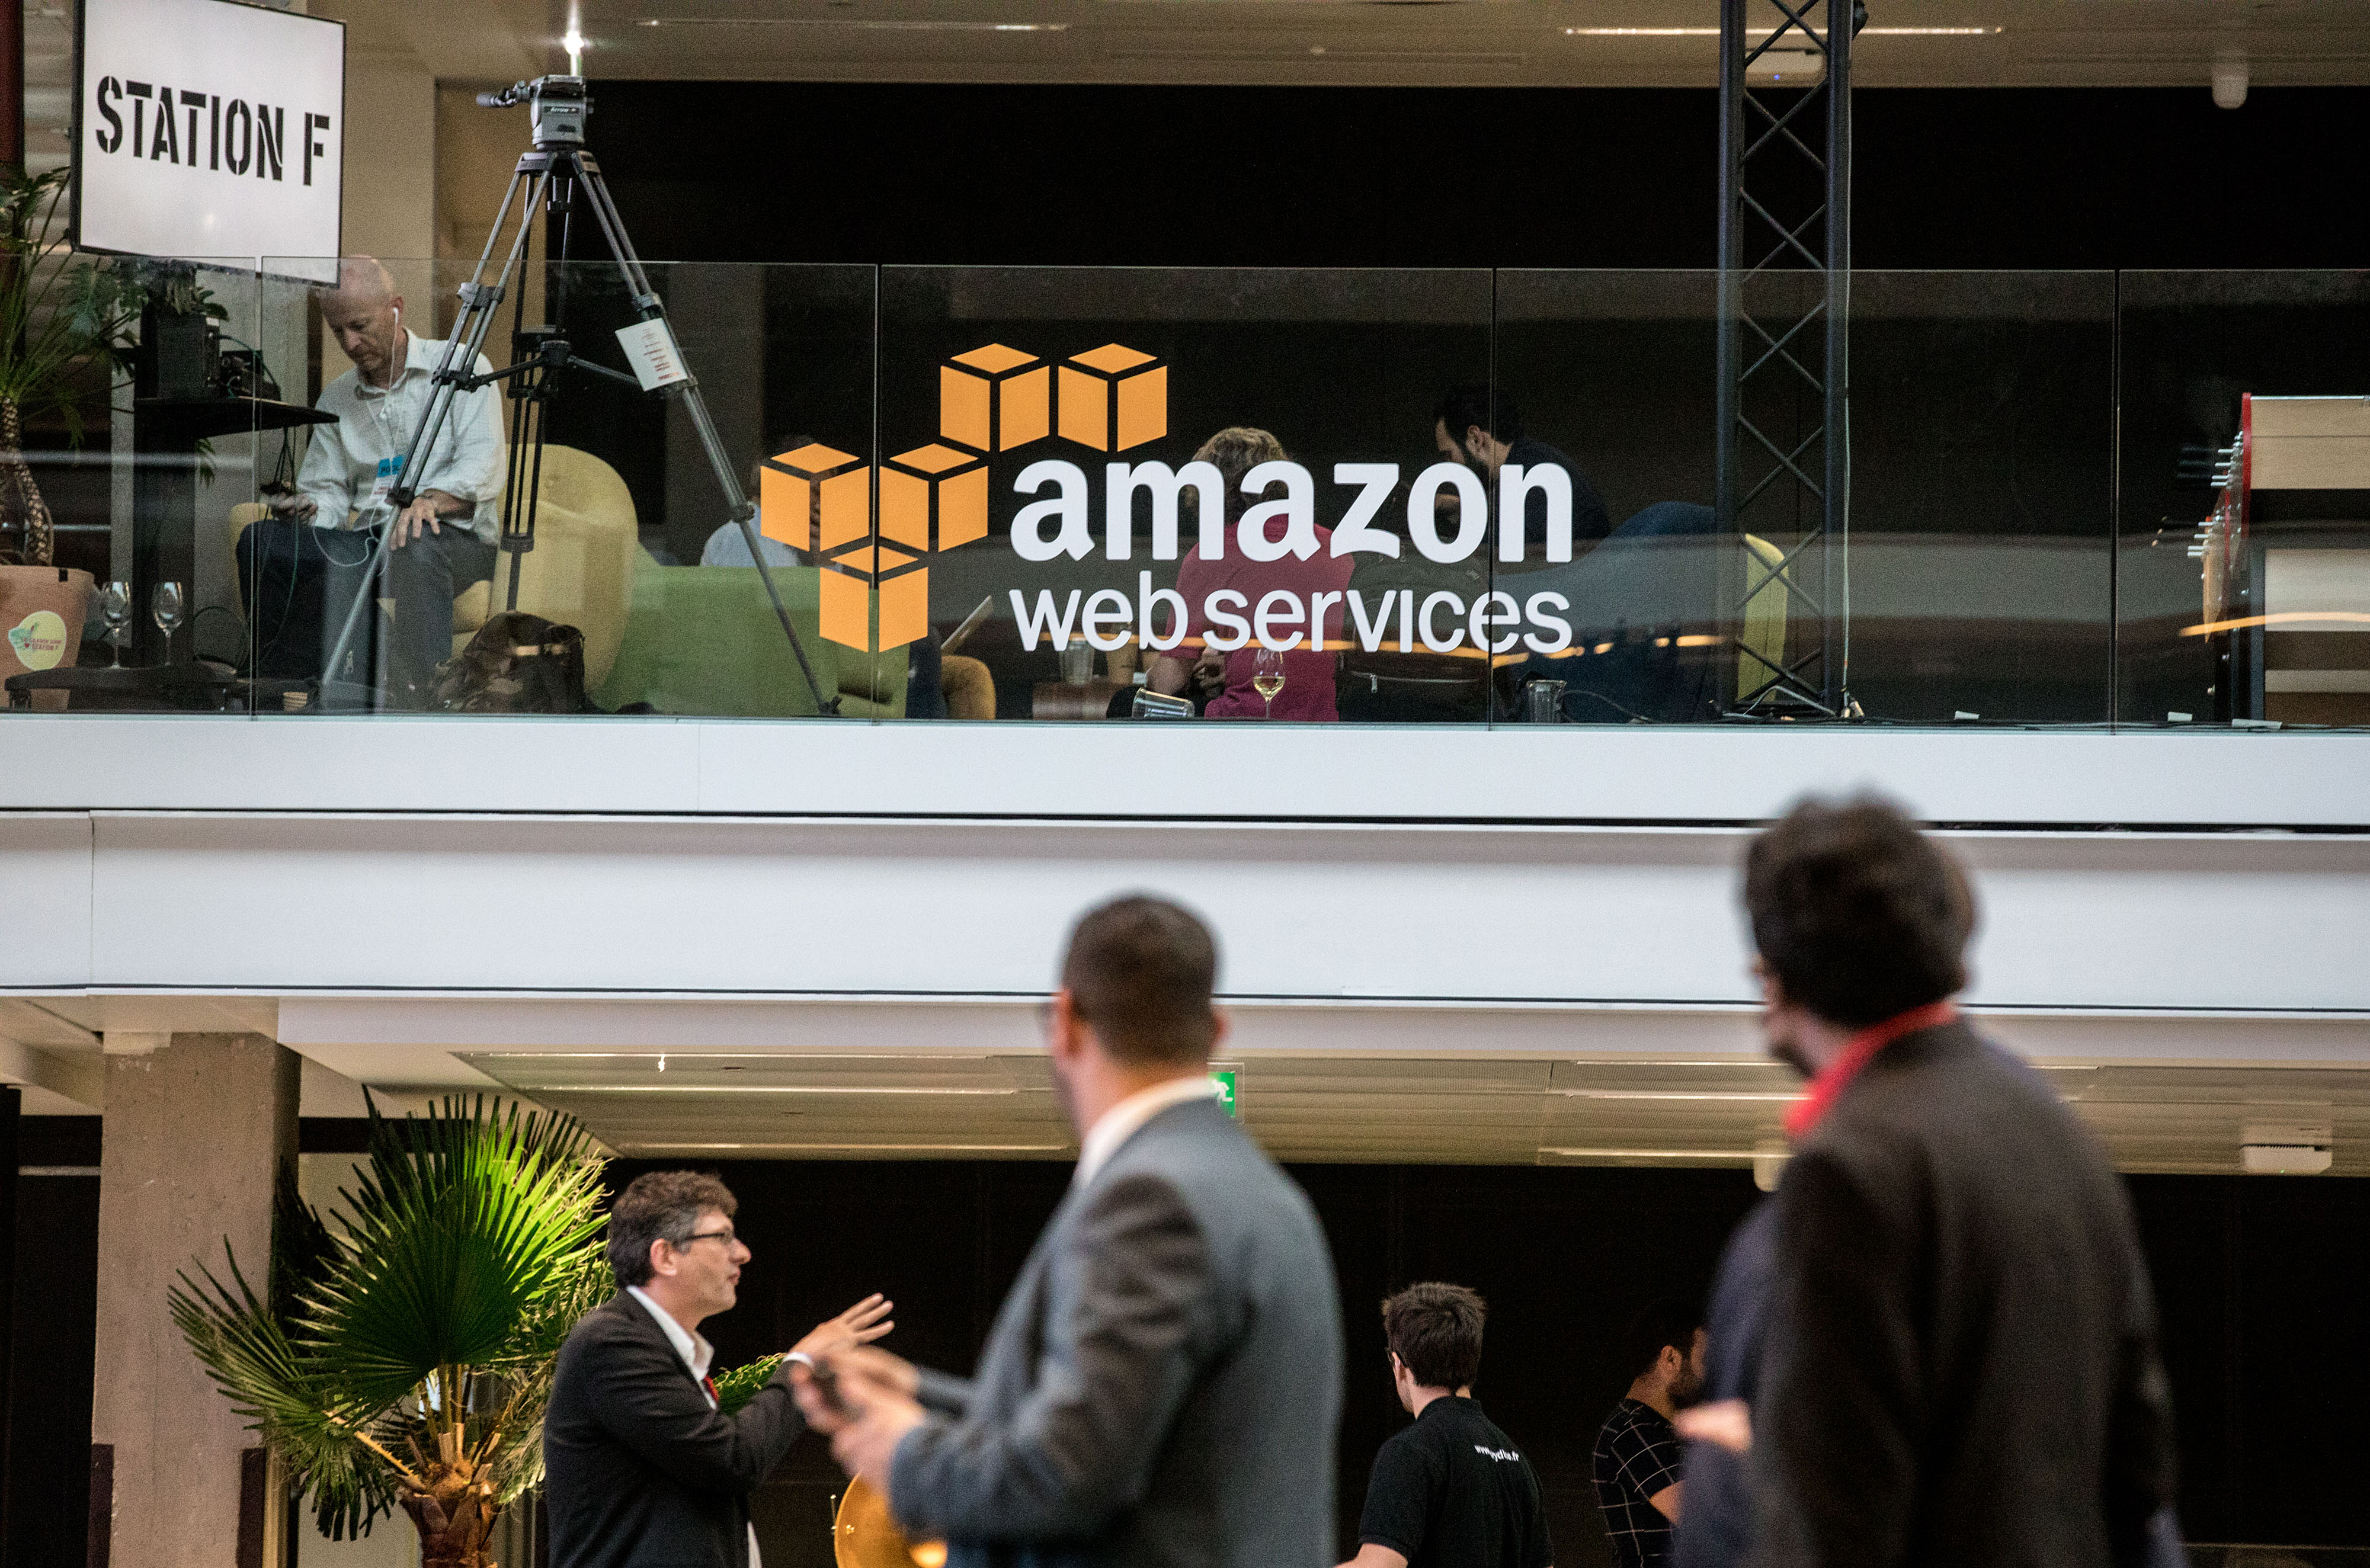 One month after denying it will exit China, AWS opens its second region there